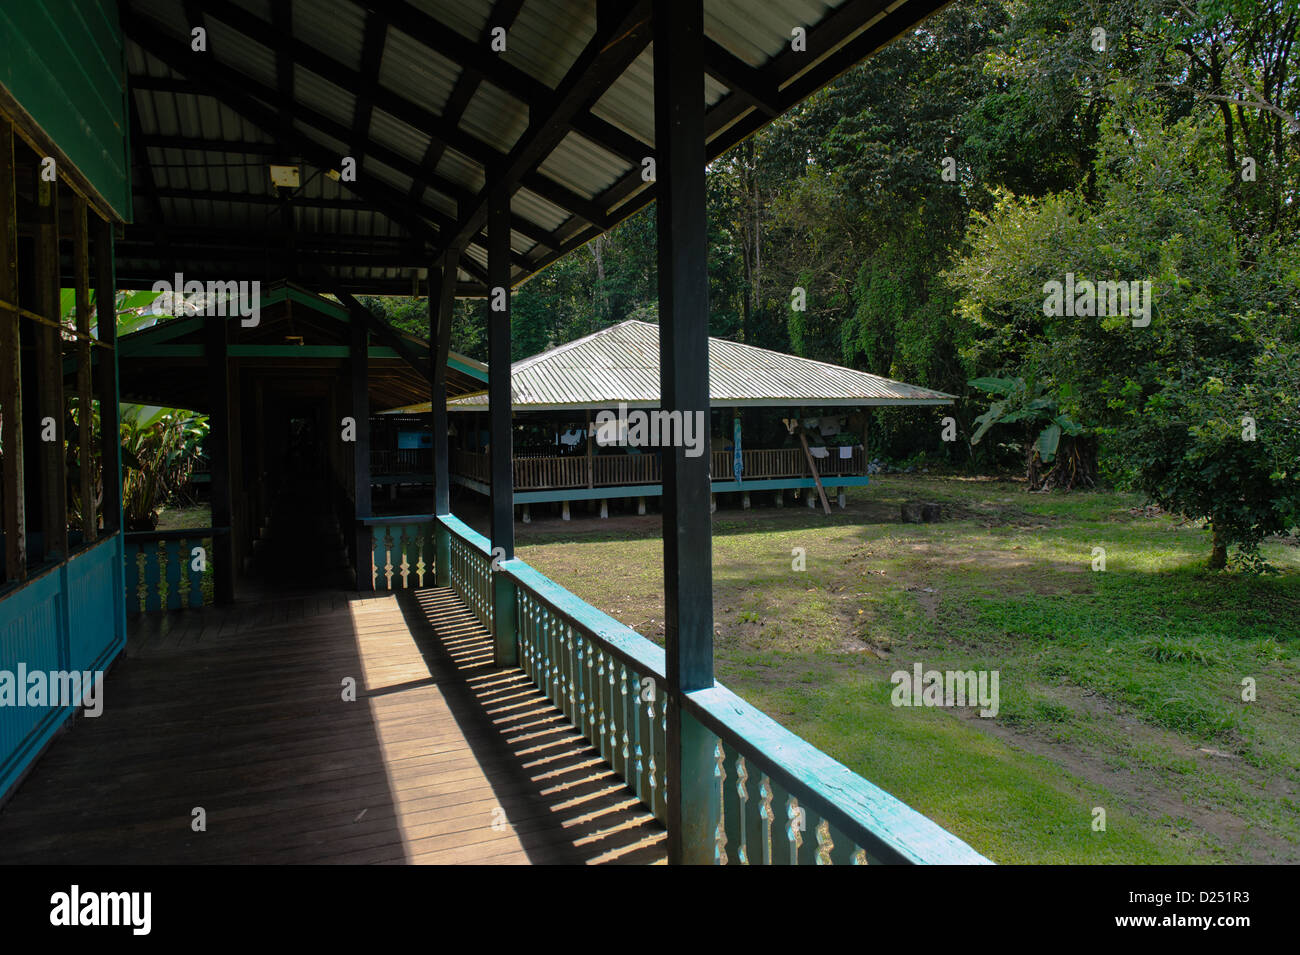 A part of Sirena Ranger Station , Corcovado National Park, Costa Rica. - Stock Image